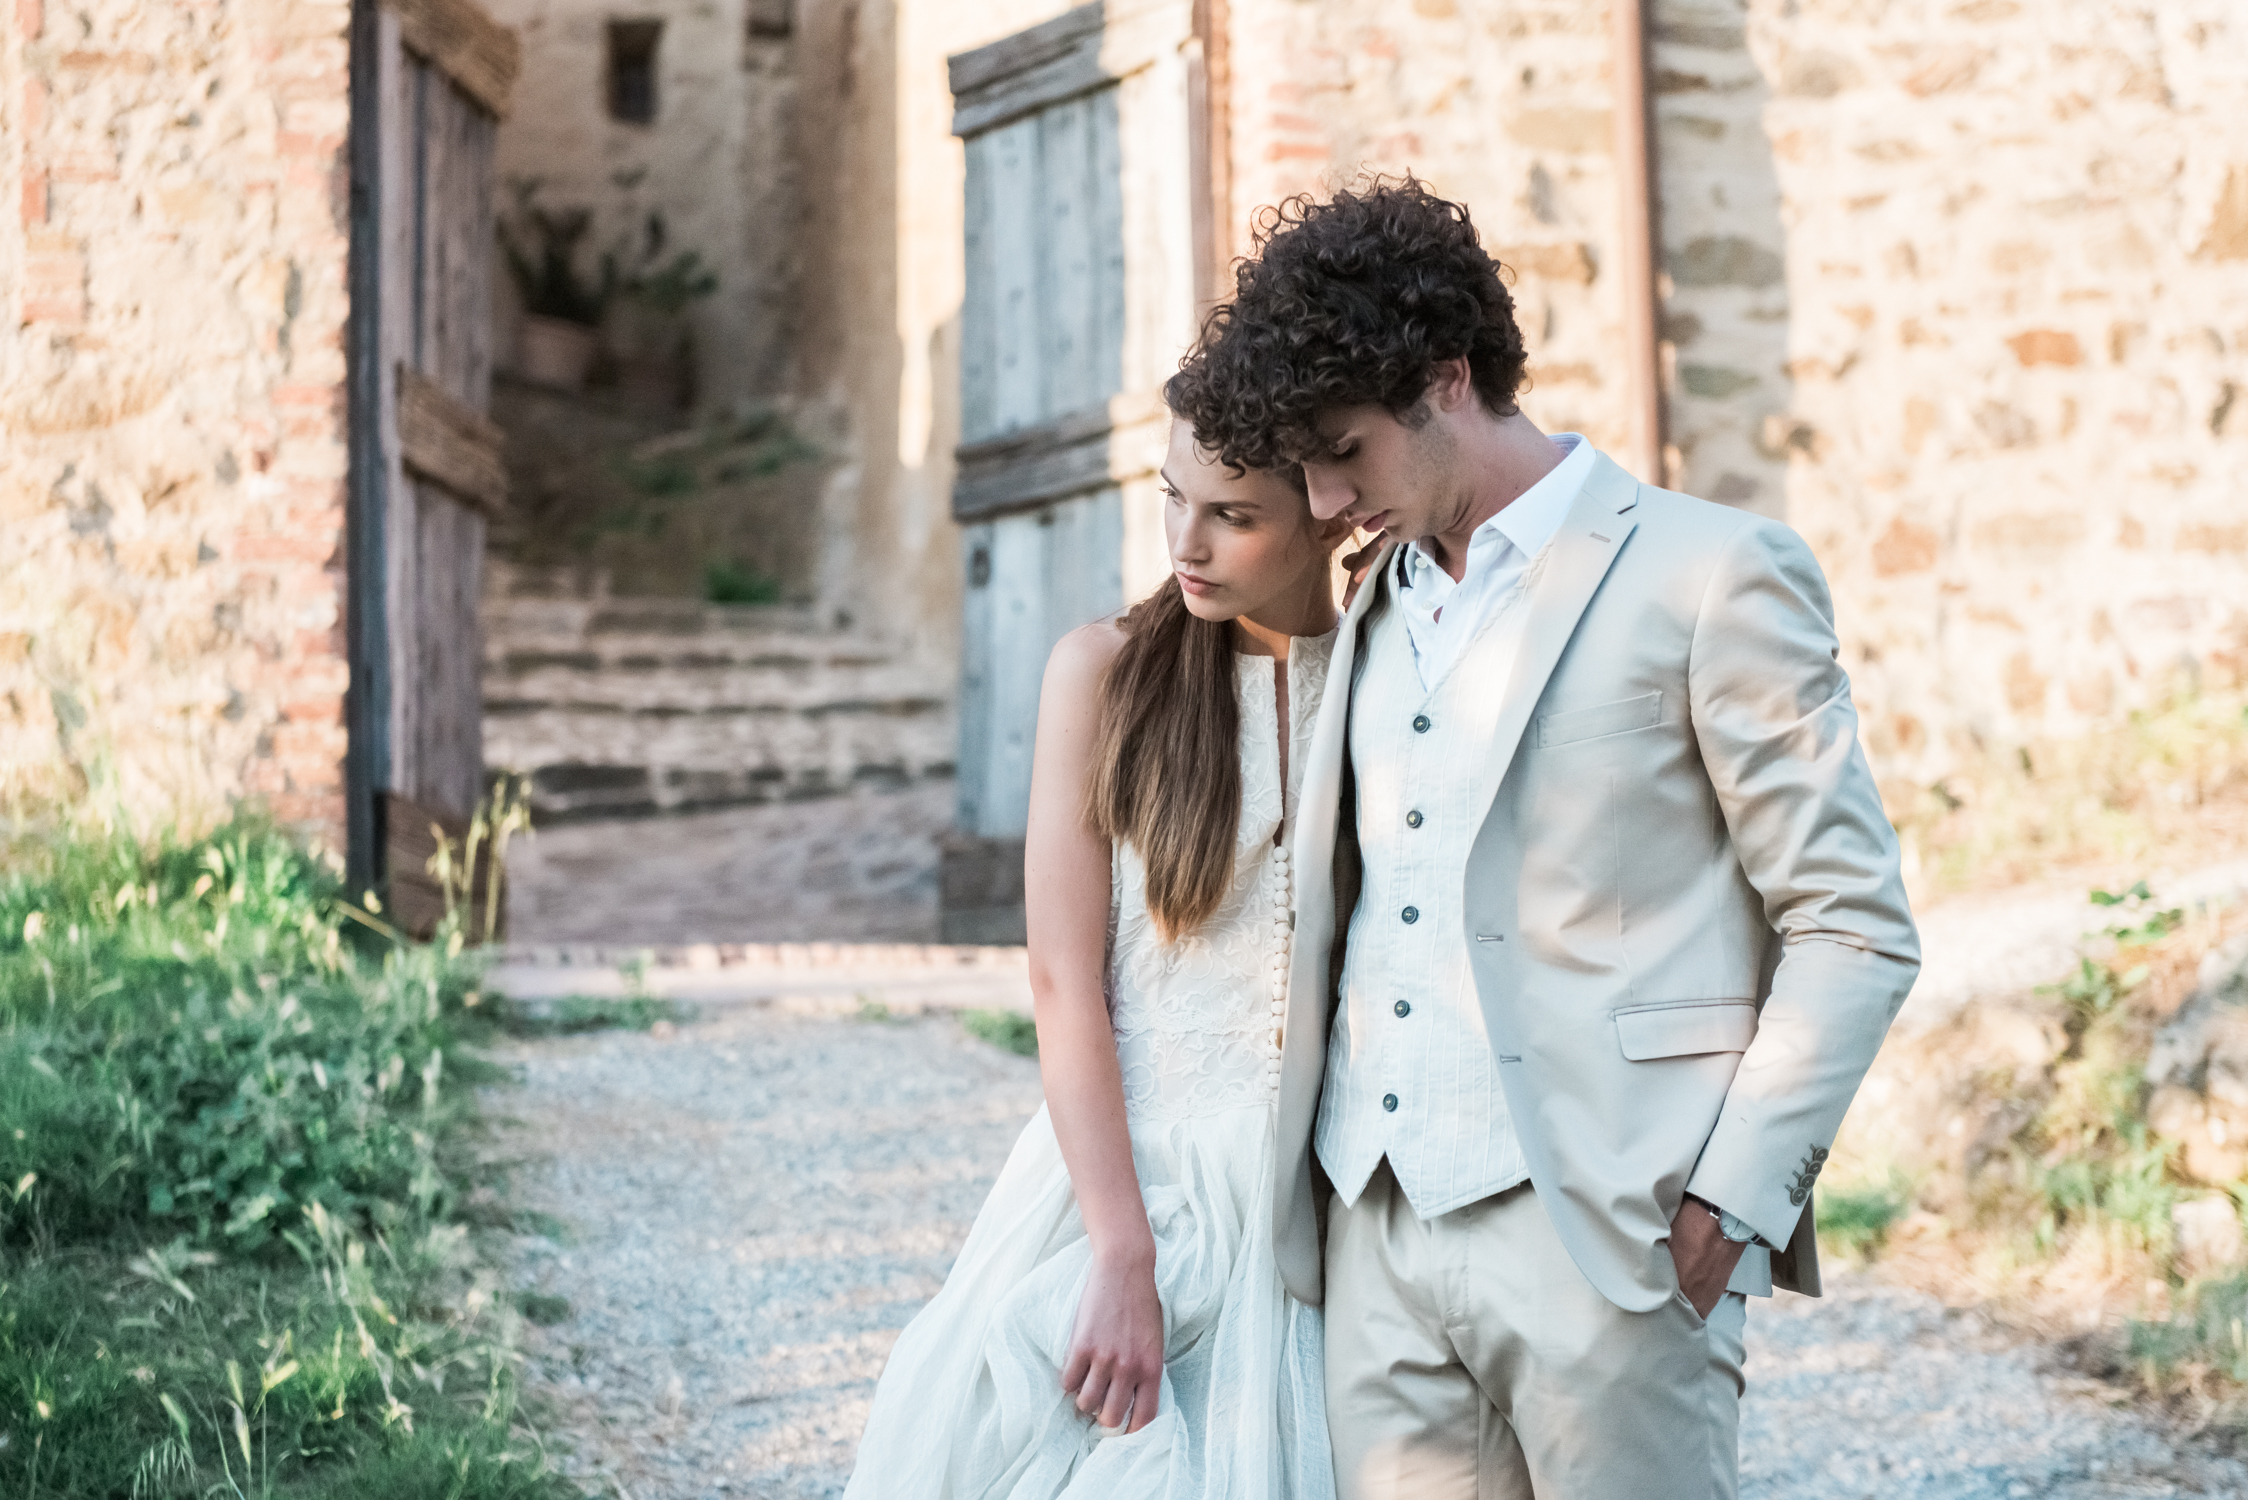 A bride and groom in Tuscany, Italy